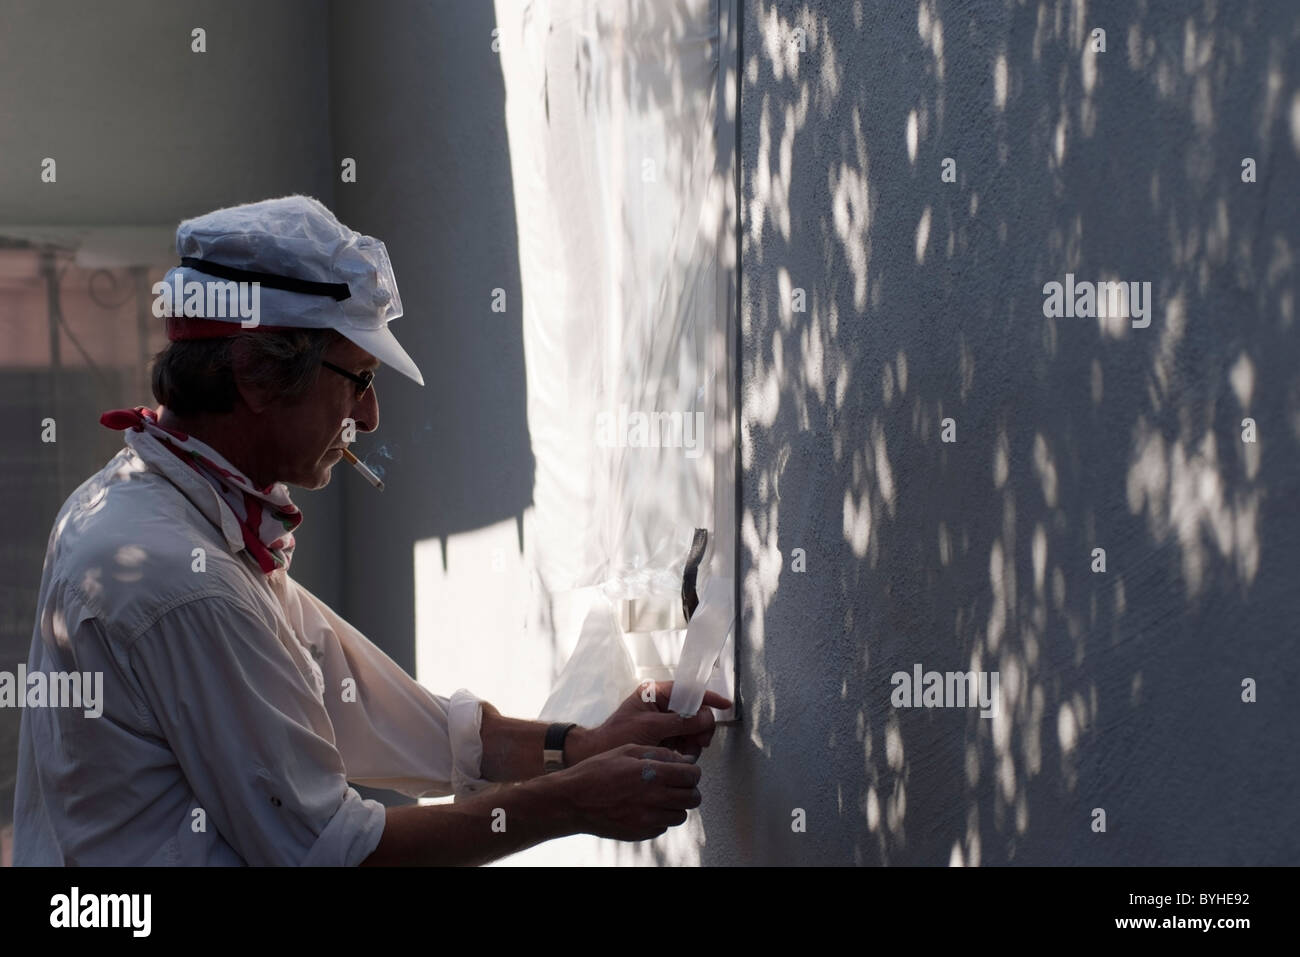 Homeowner strips masking tape from a window after painting his single family ranch style home in San Jose, CA. - Stock Image